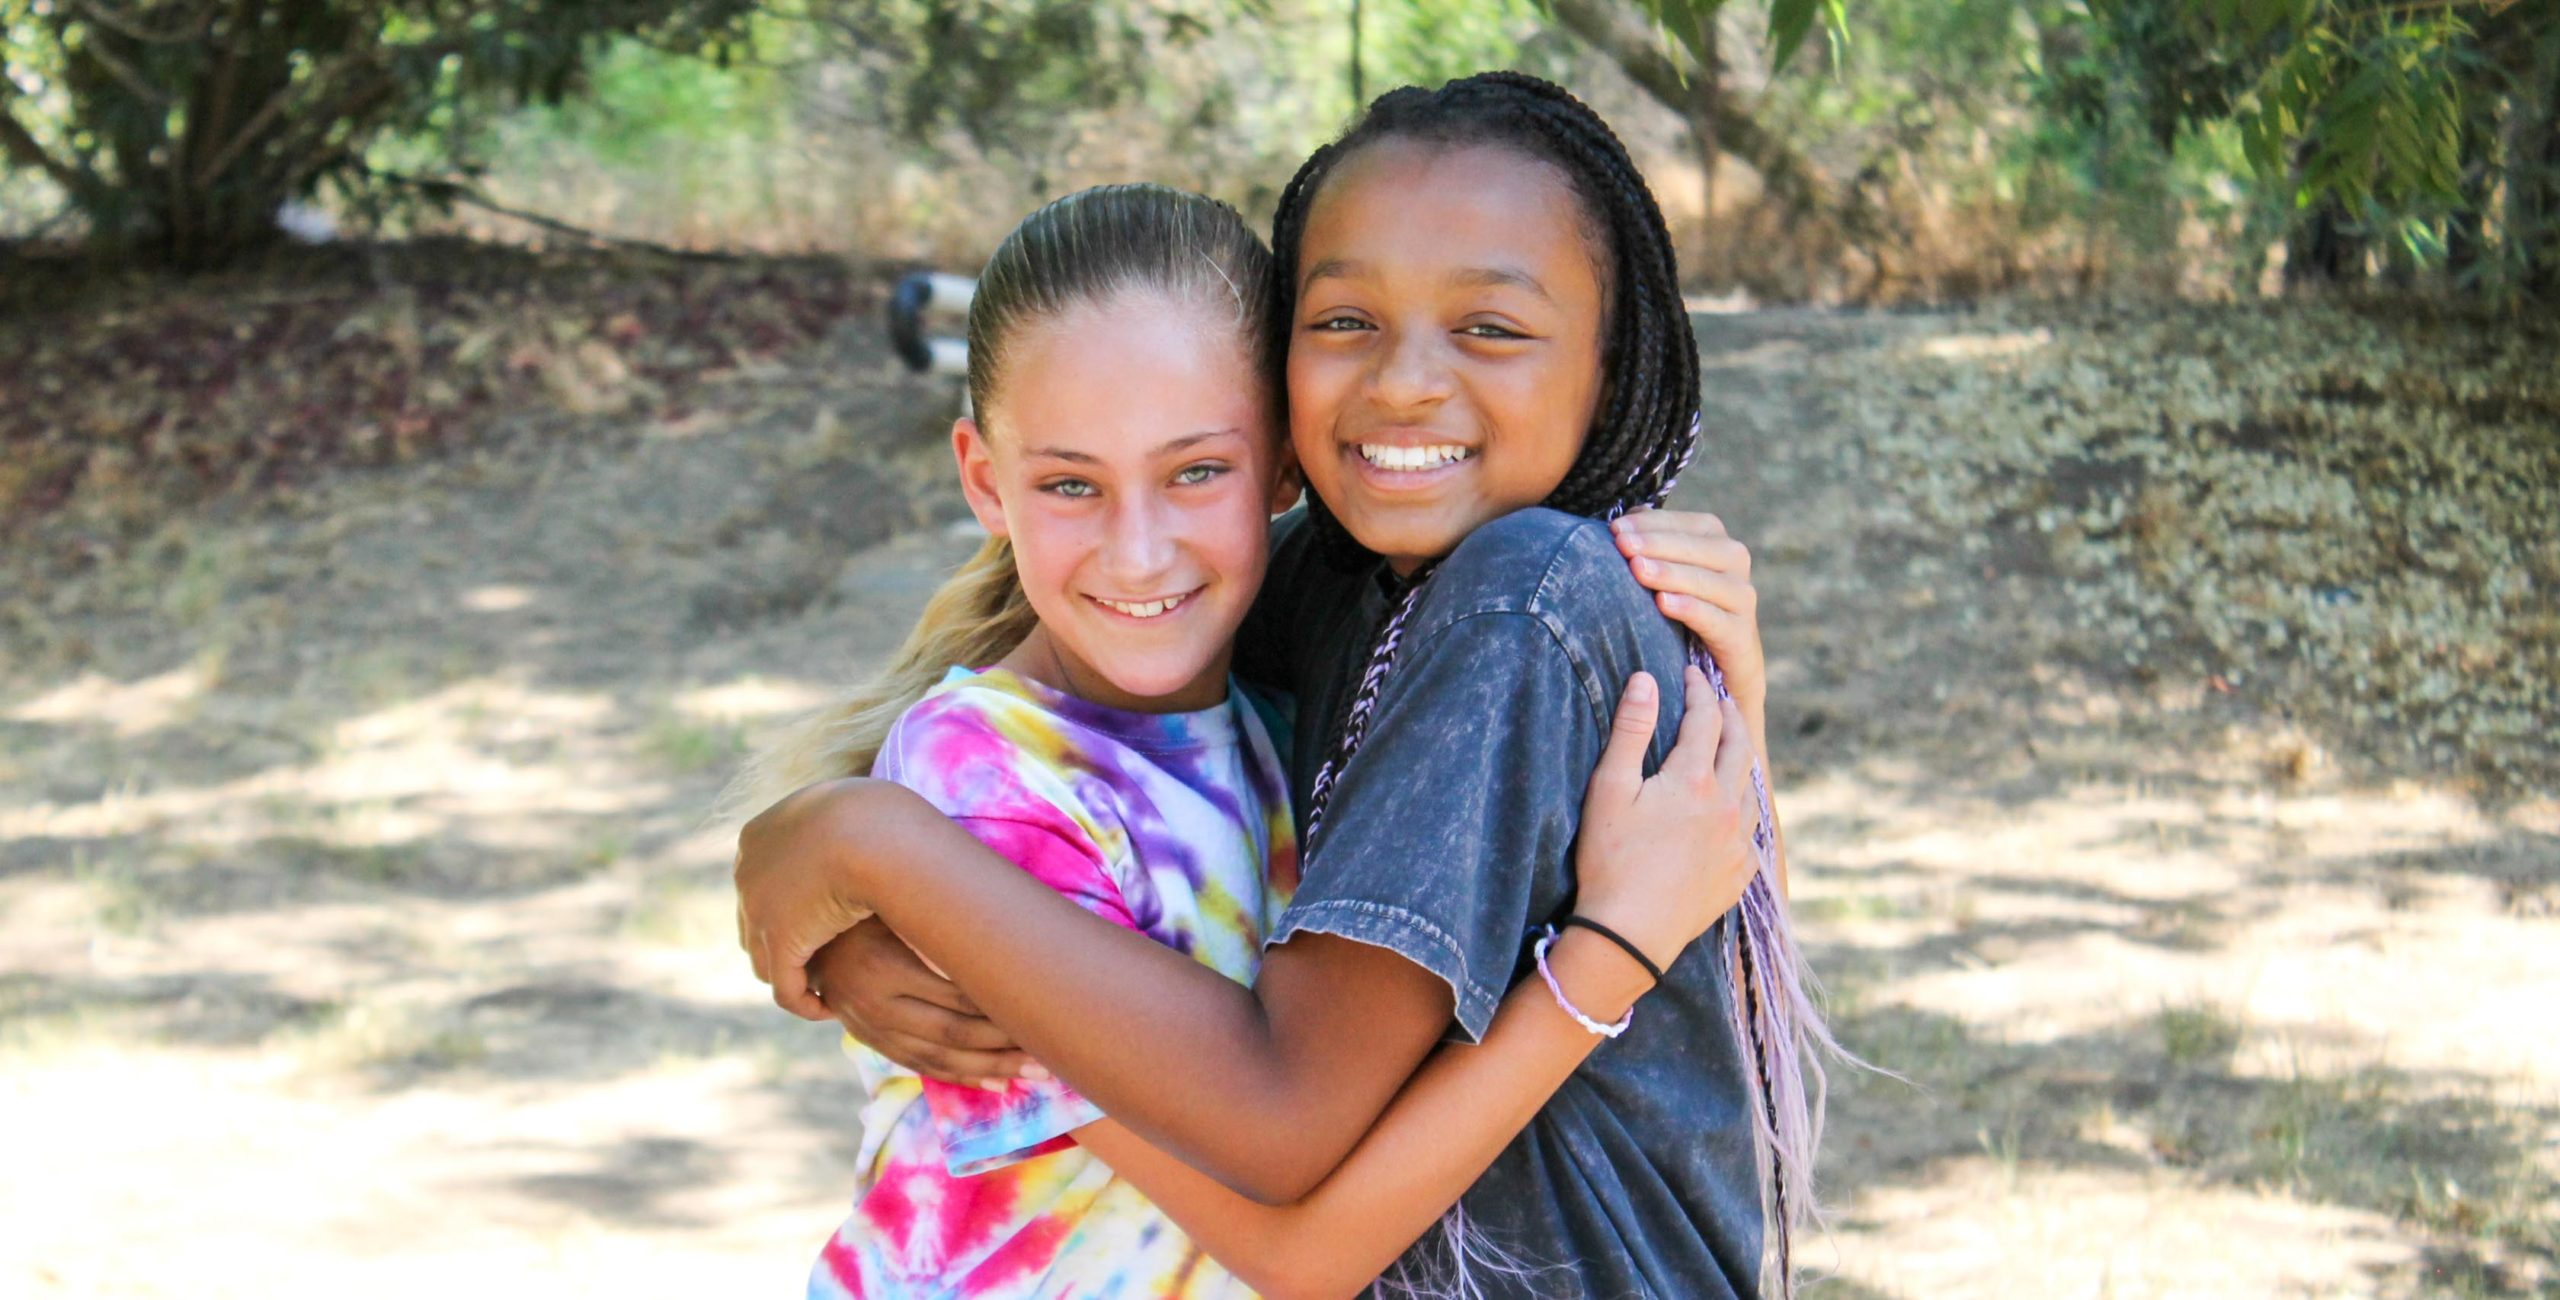 Campers hugging and smiling at the camera